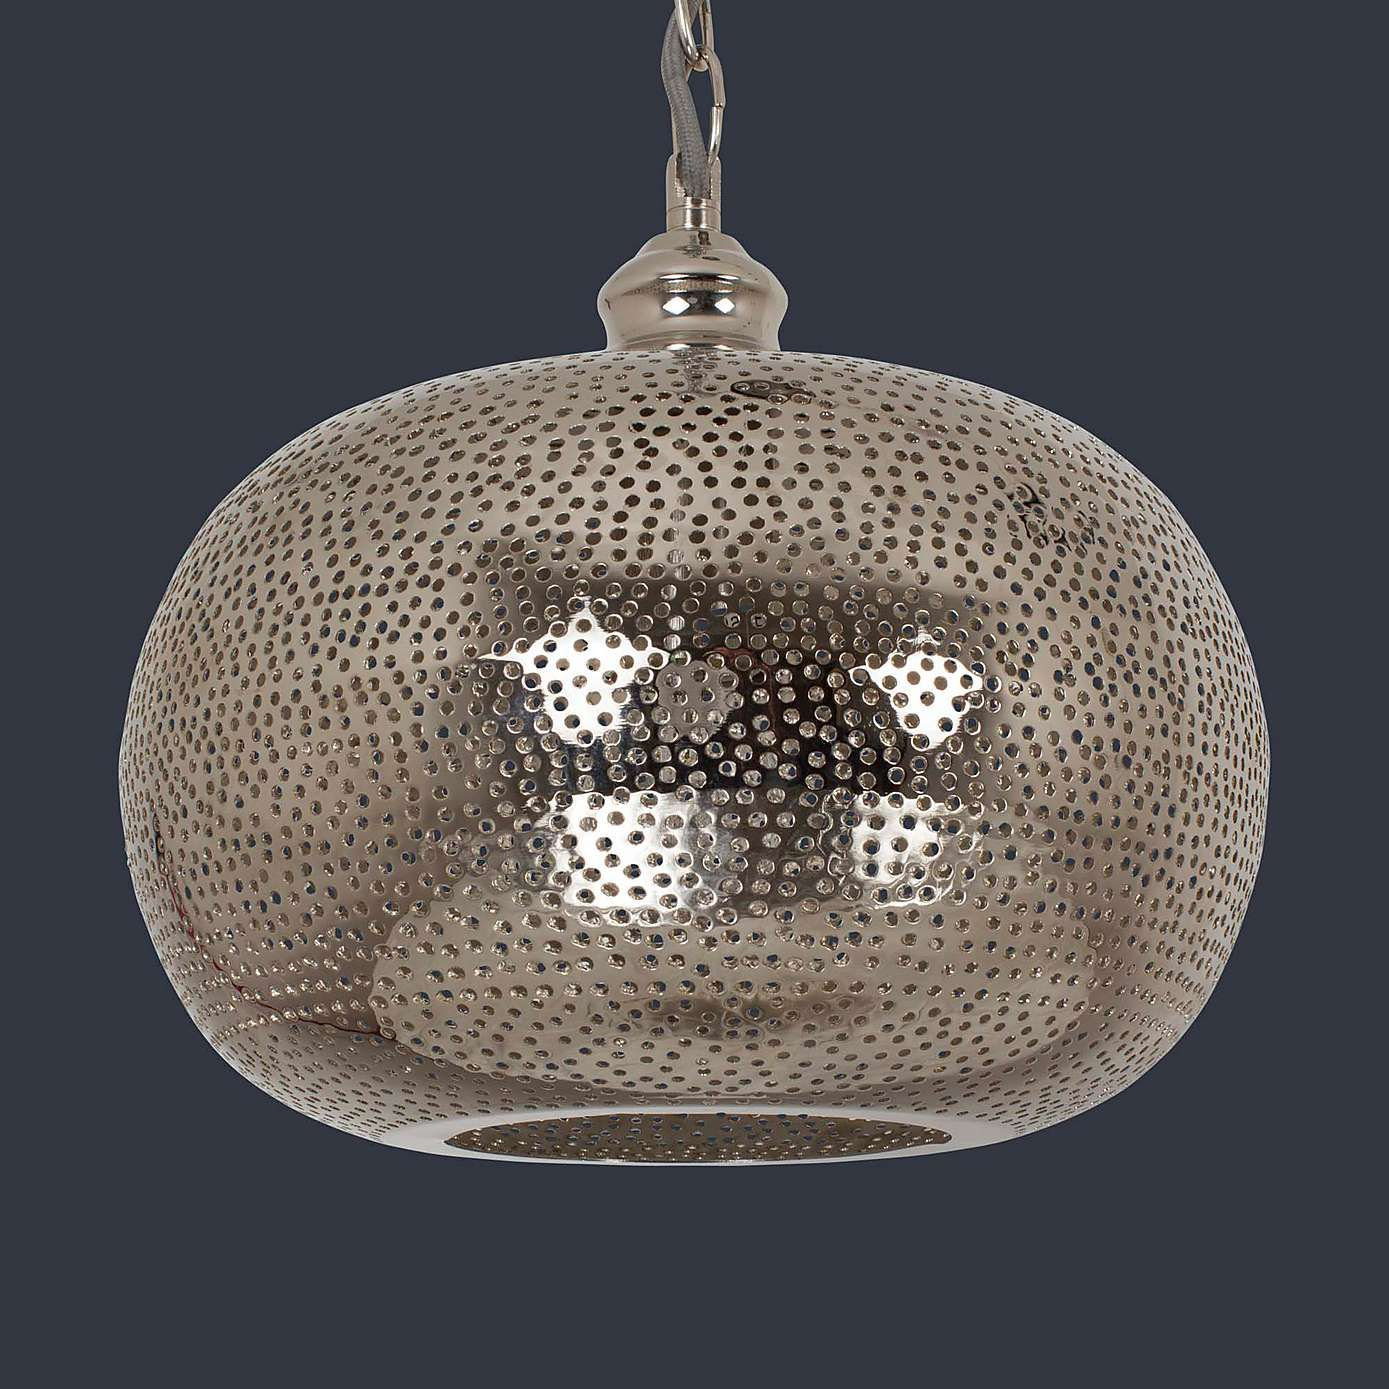 Luna Ceiling Light Pendant | Dunelm | Luces | Pinterest ...